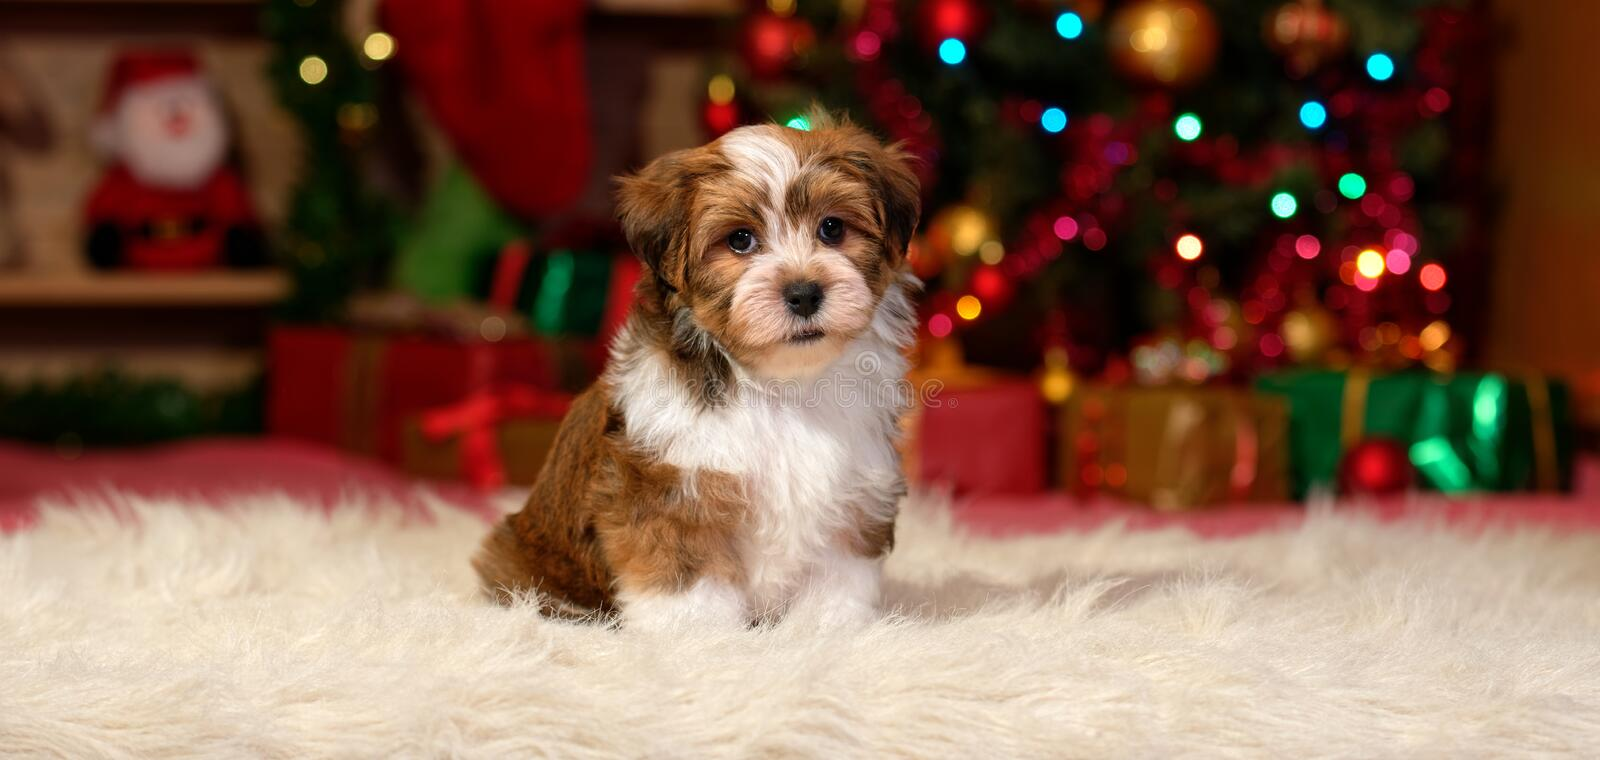 Cute Havanese puppy in front of a Christmas tree royalty free stock photography